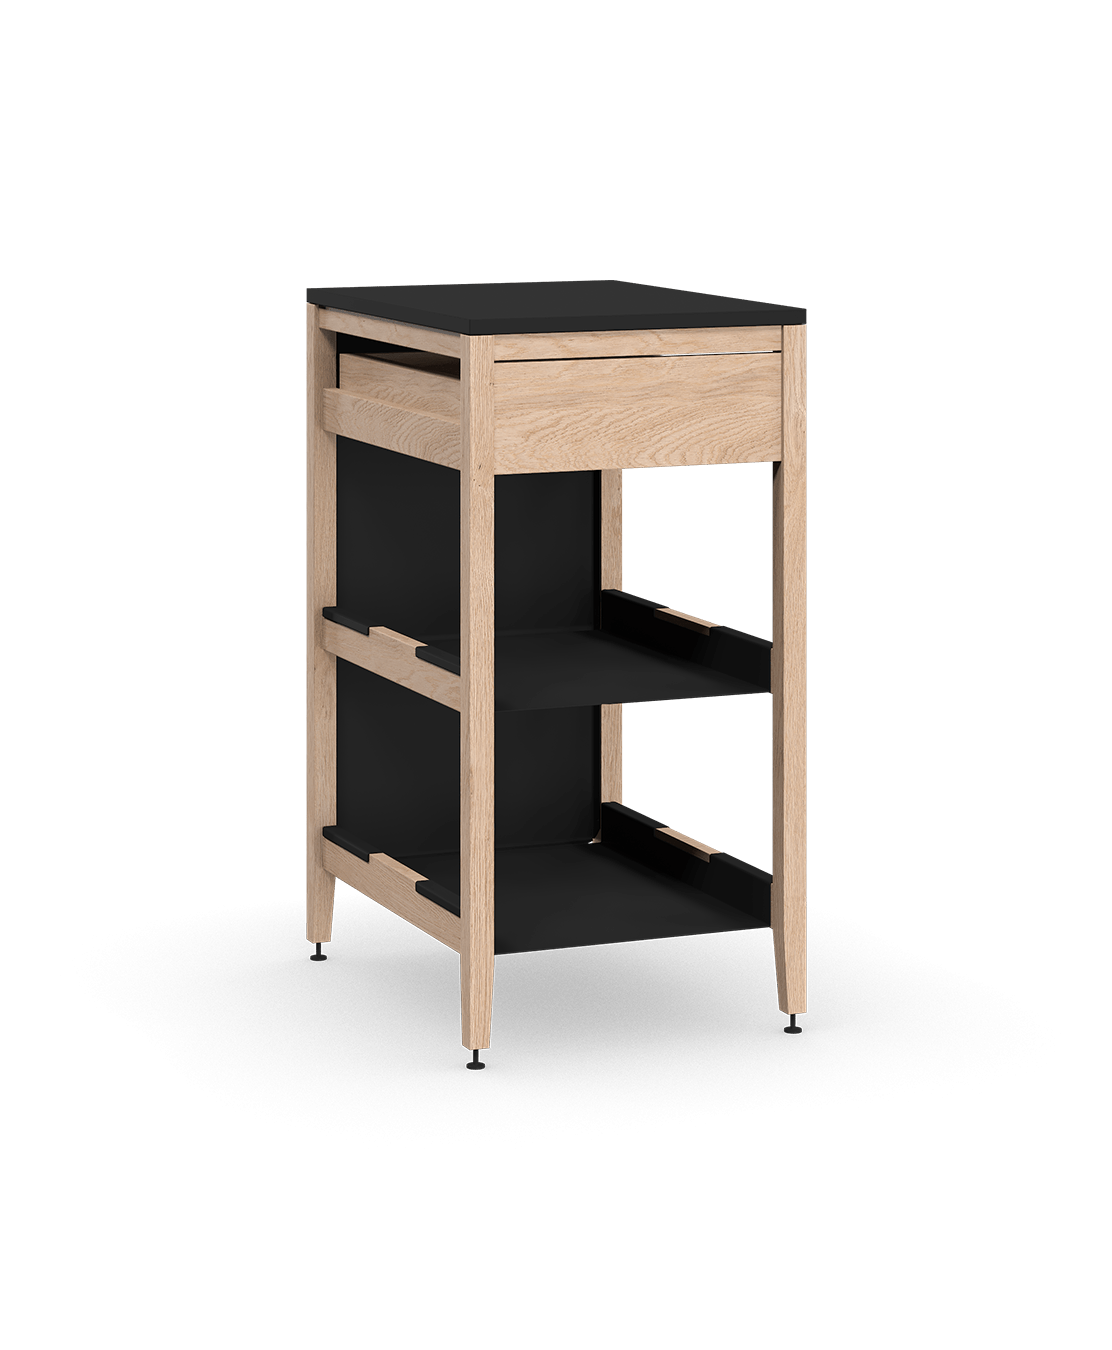 base kitchen cabinets shelving ideas radix cabinet 2 shelf drawer f back 21 in white blck coquo oak solid wood modular shelves 1 inch